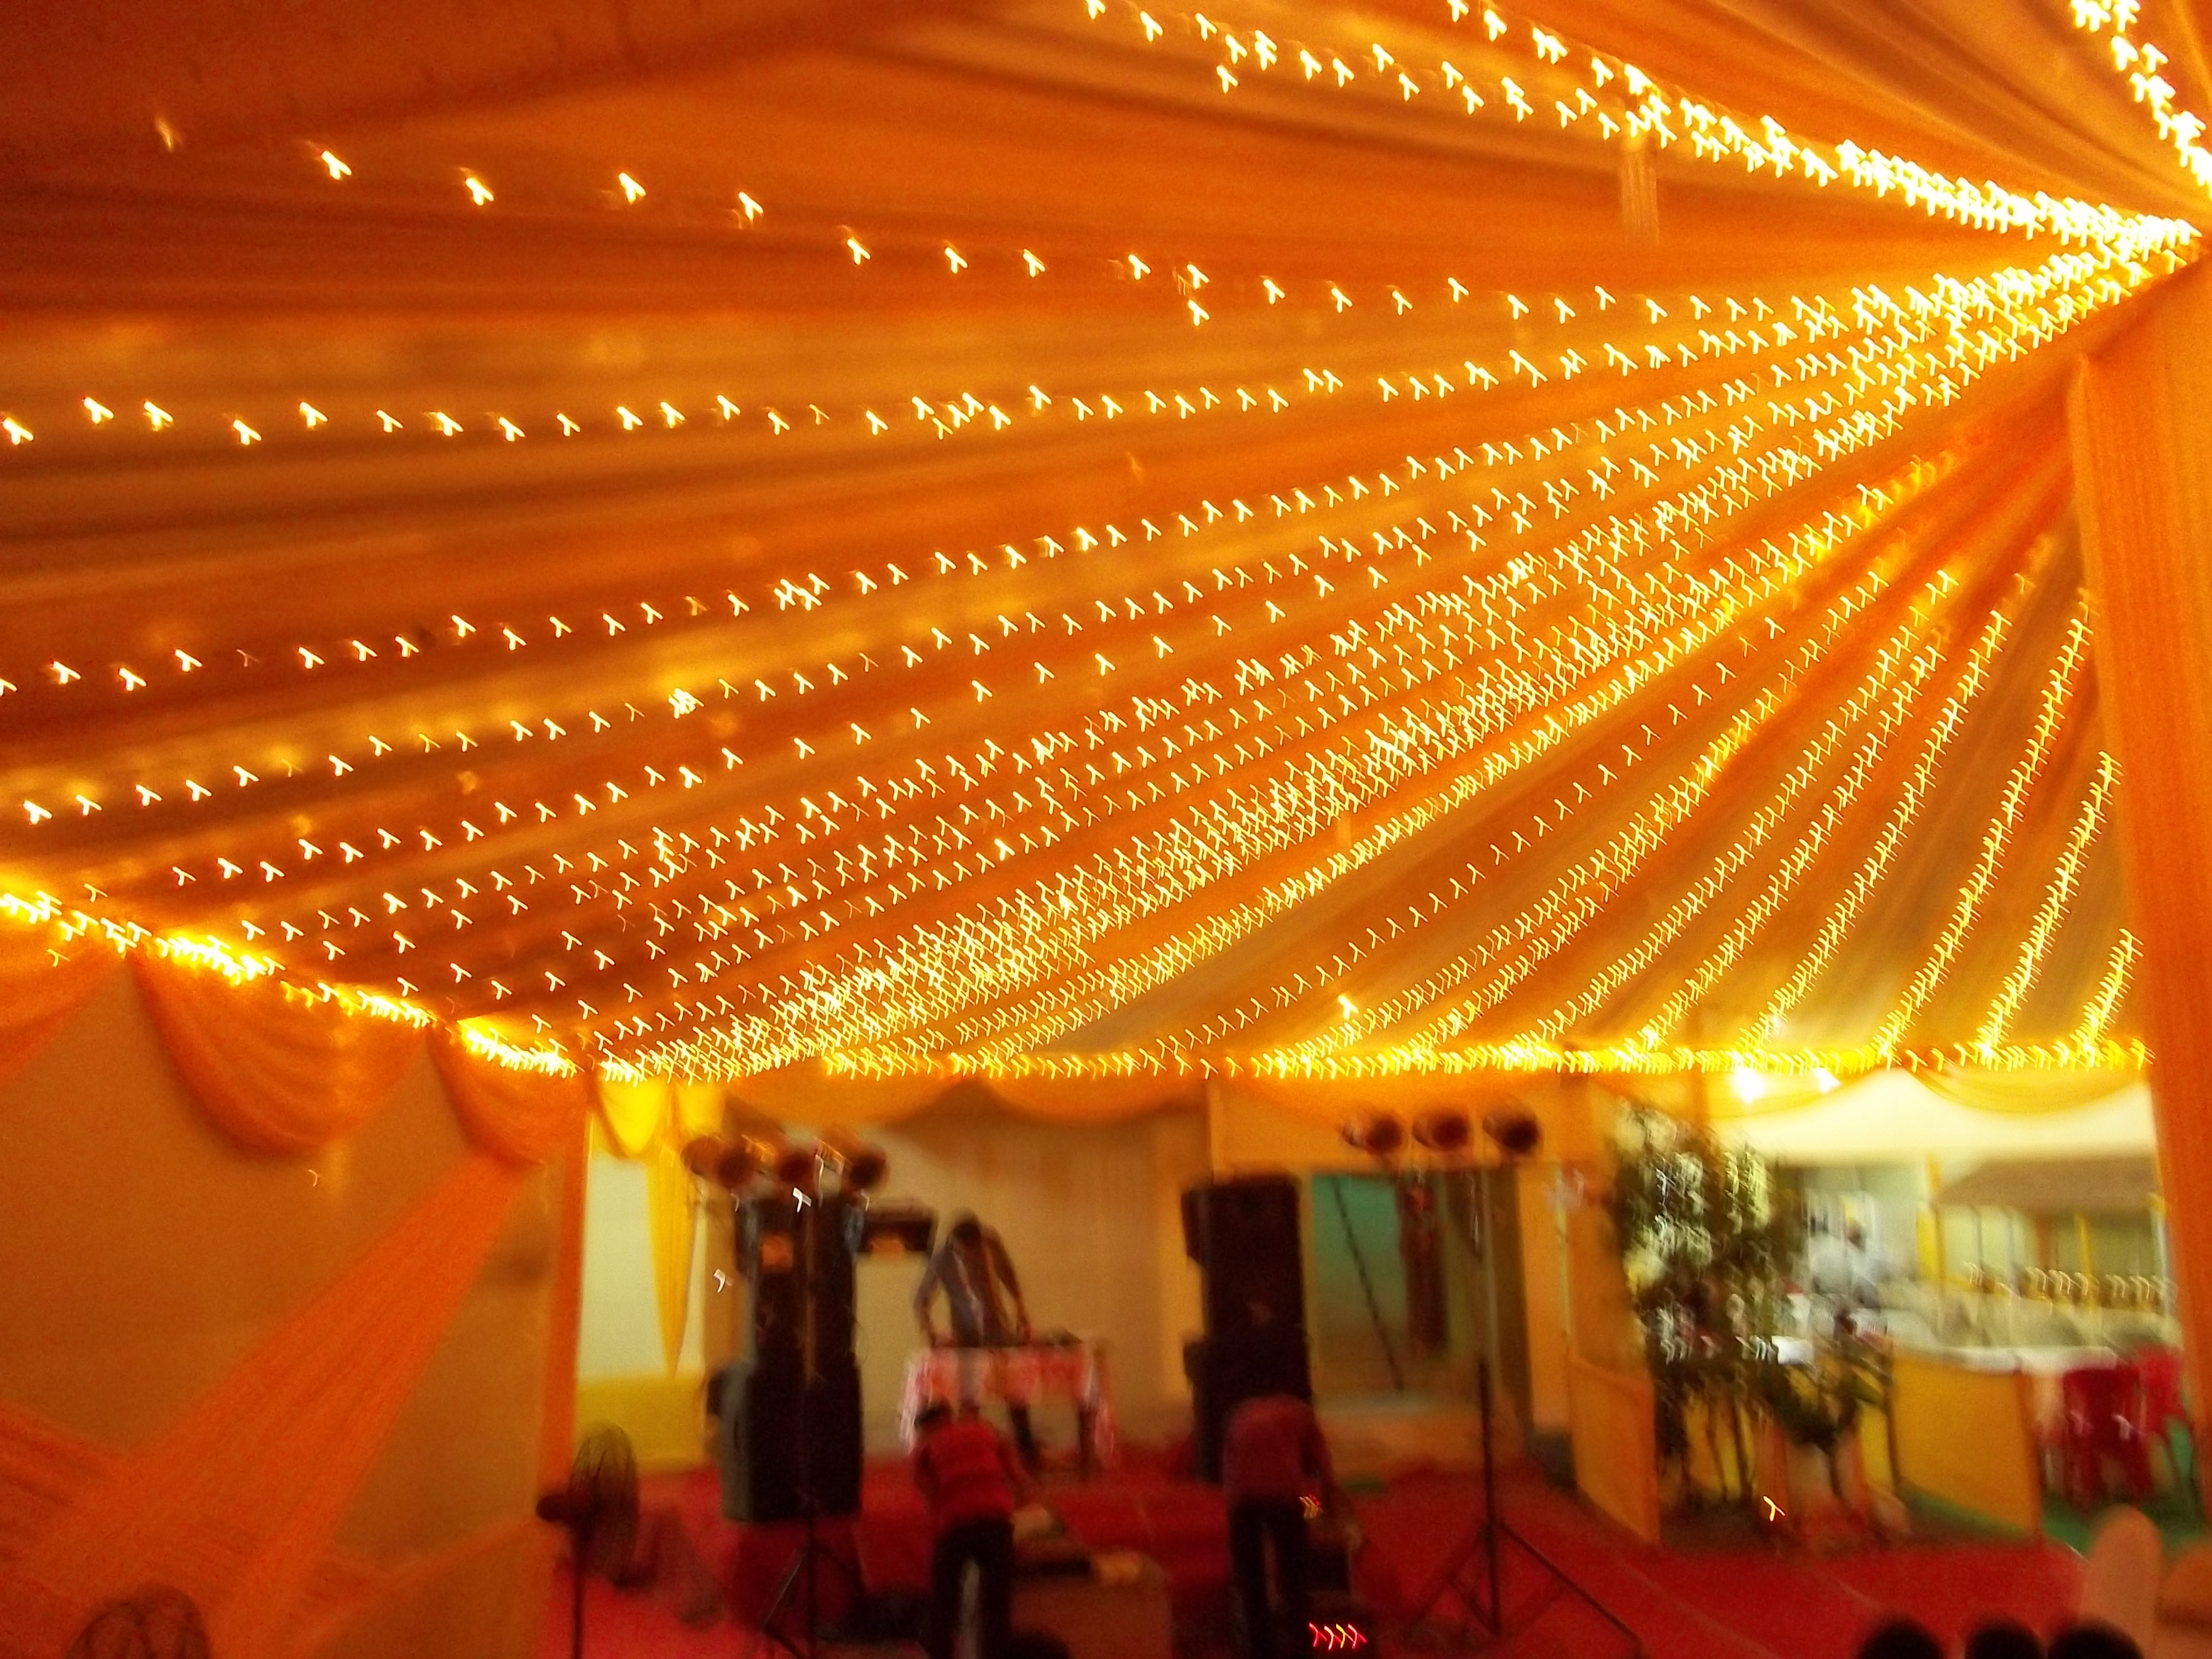 Wedding at guwahati arize event services 26147129 91735551 junglespirit Choice Image